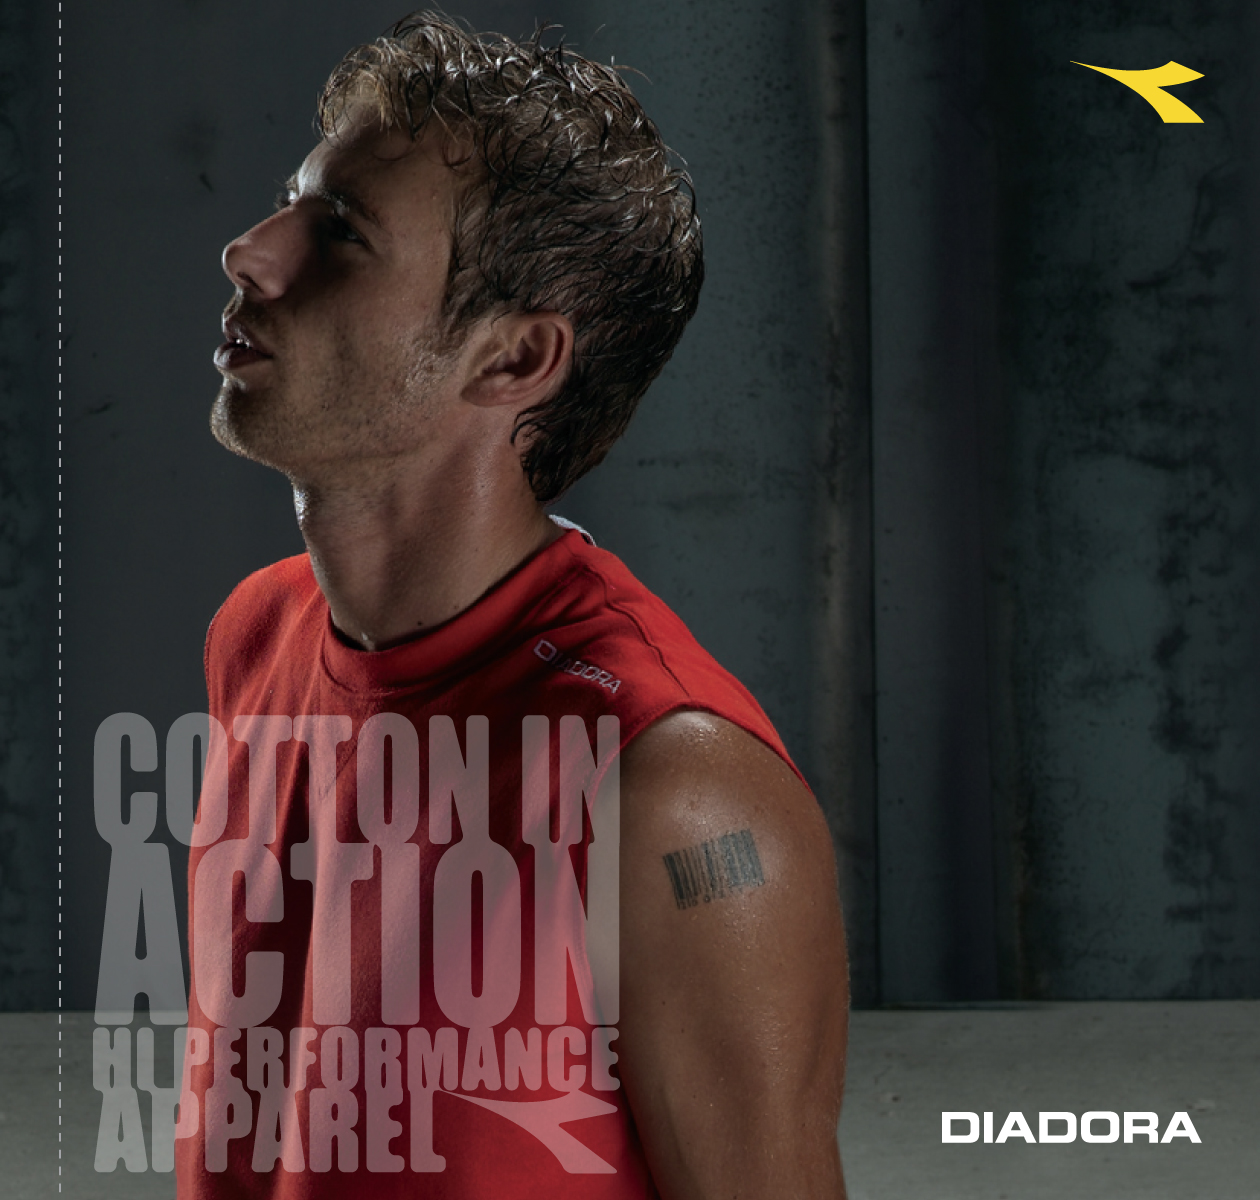 Catalogo Cotton in Action Diadora